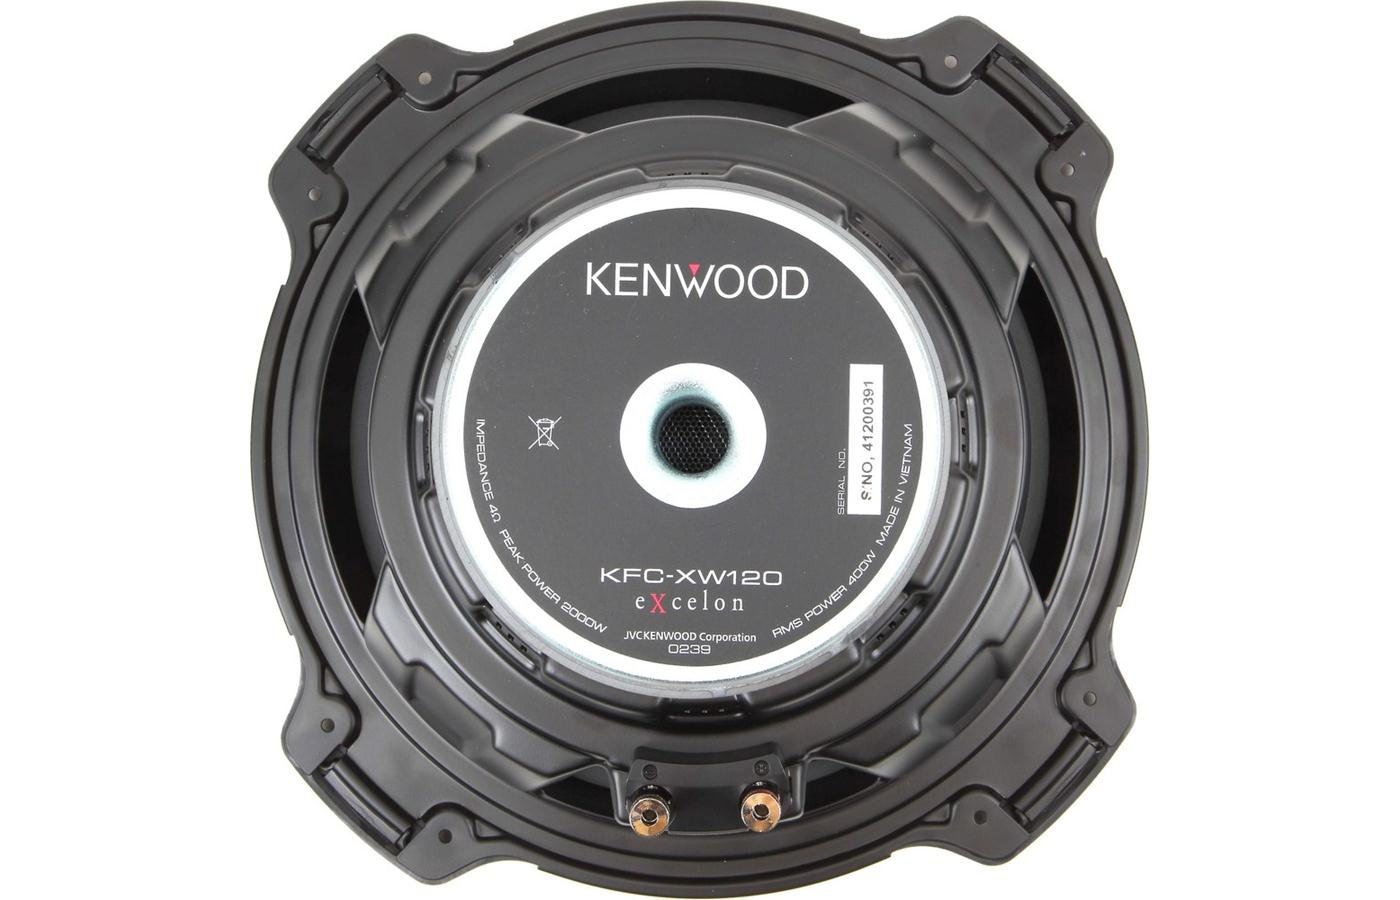 Kenwood KFC-XW120 Excelon Series 12-inch 4-ohm Subwoofer